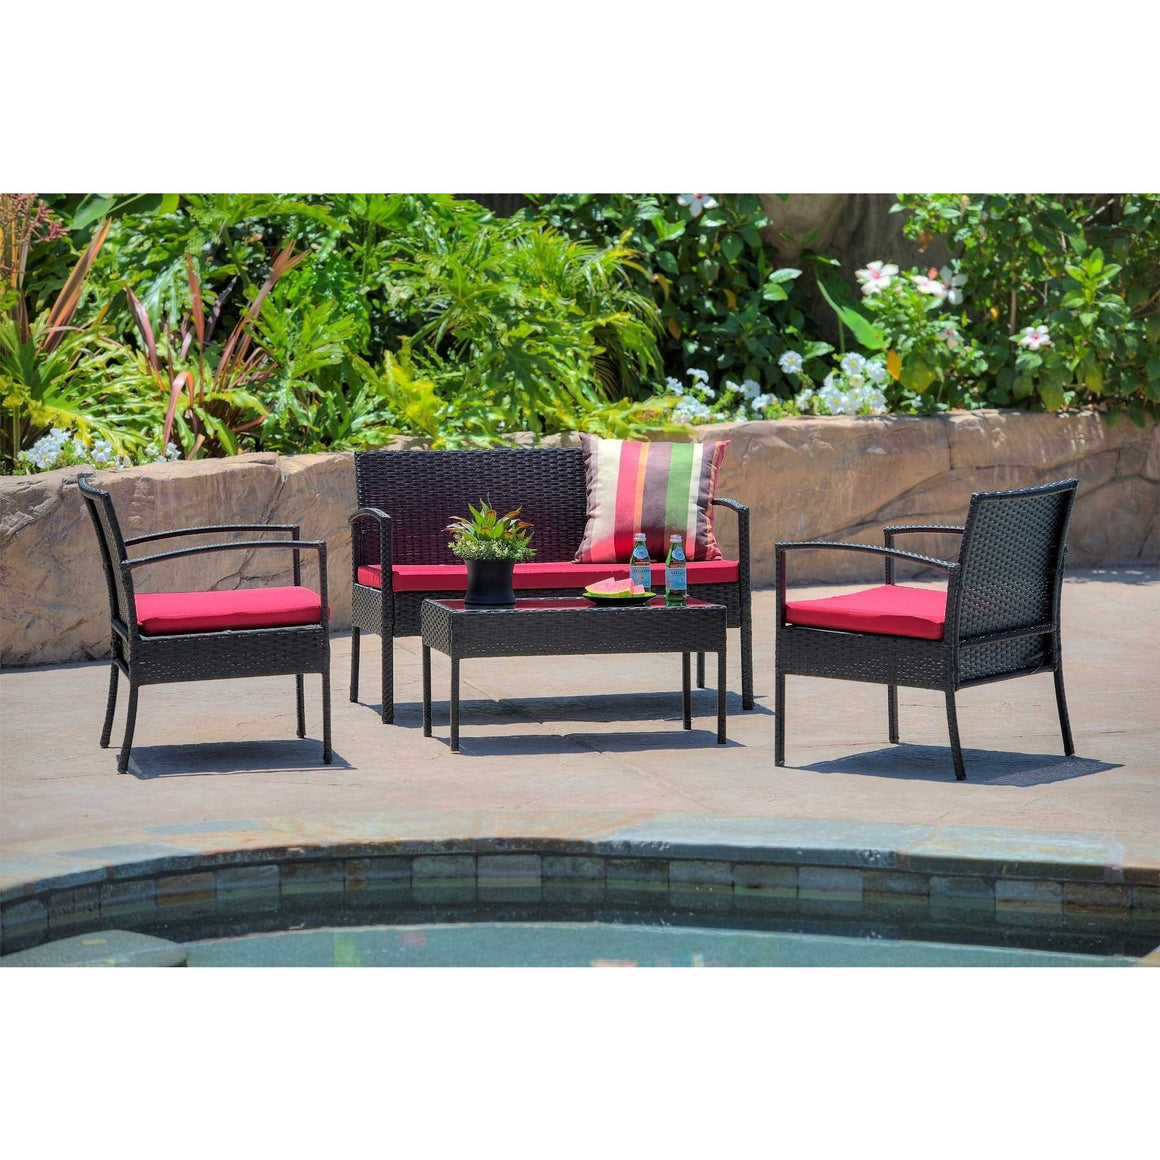 W Unlimited Outdoor Wicker Furniture 4PC set w/ Table Red Cushion